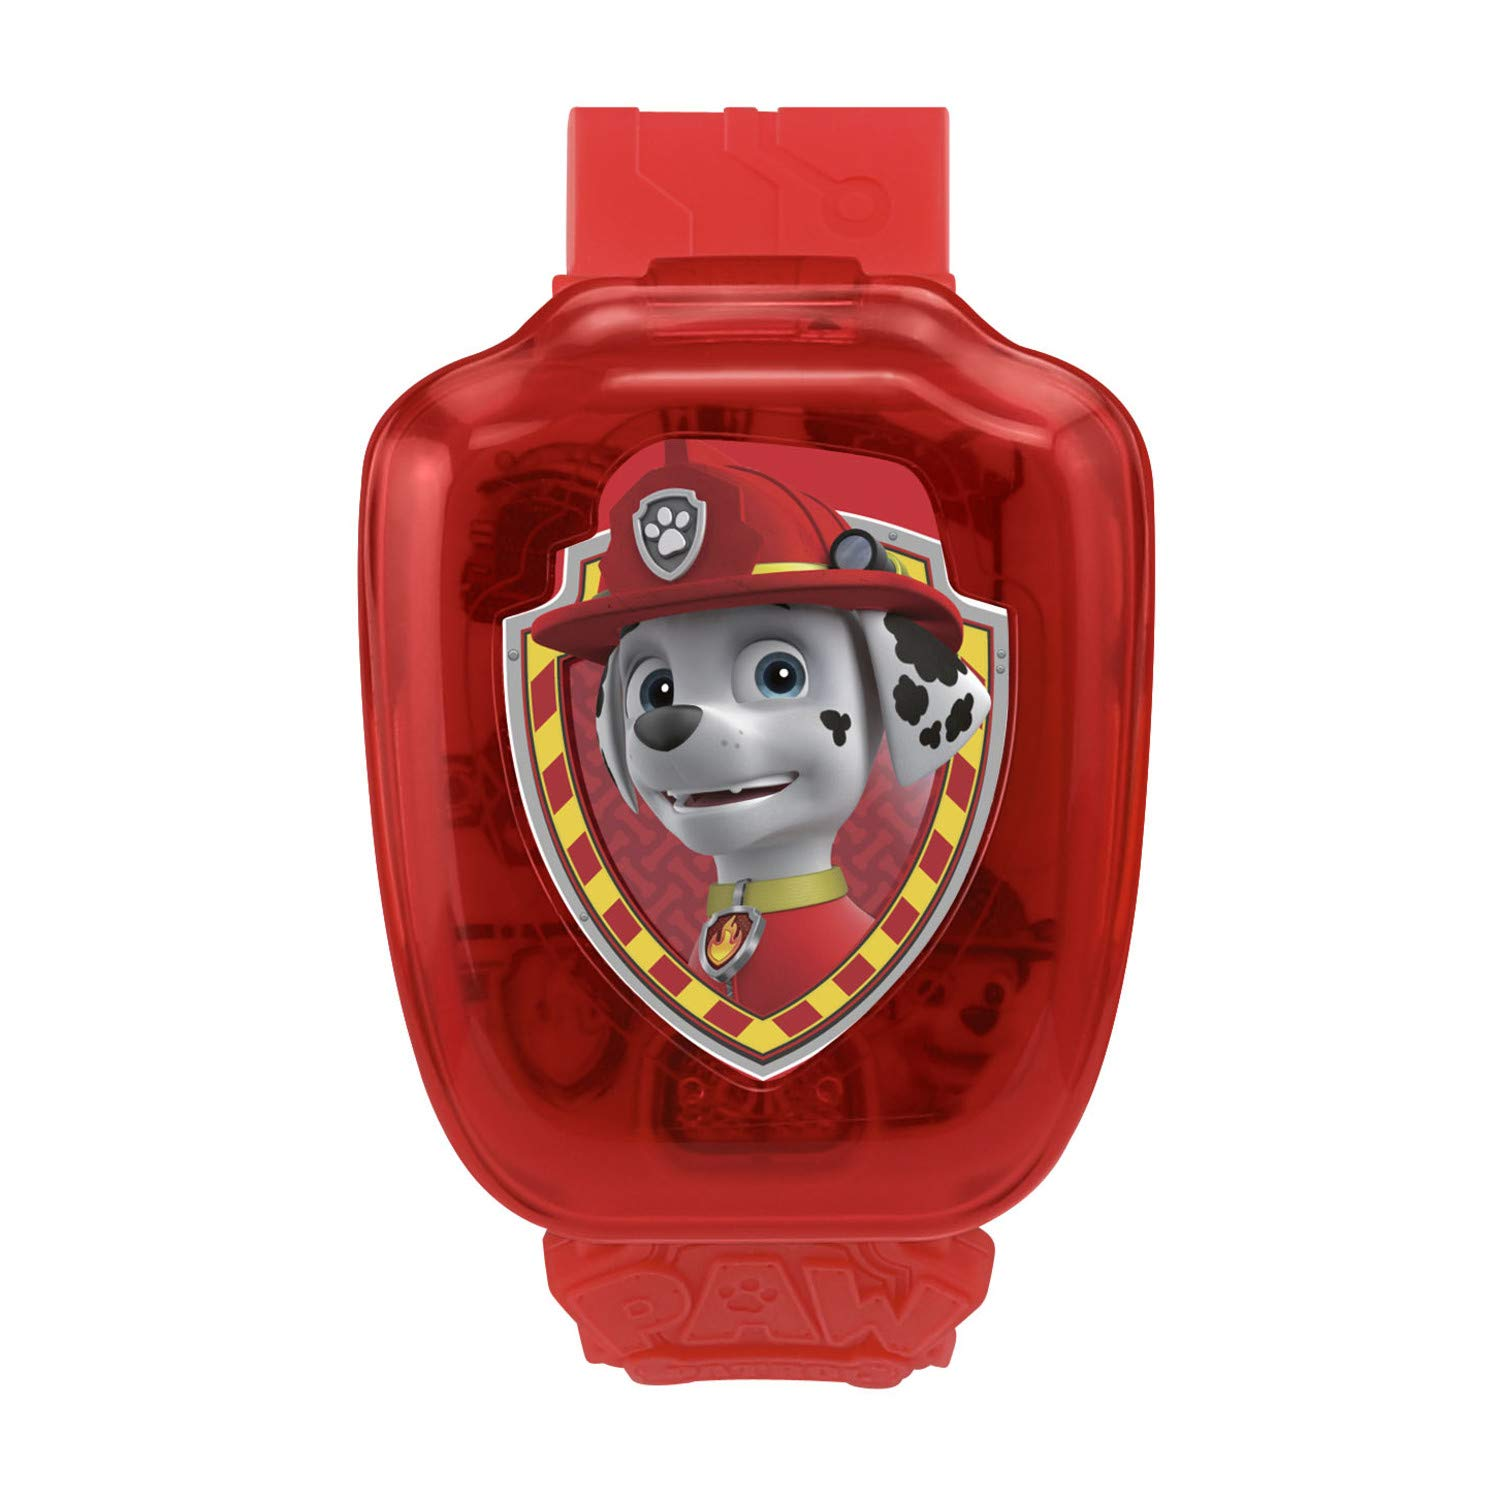 VTech PAW Patrol Marshall Learning Watch, Red by VTech (Image #2)